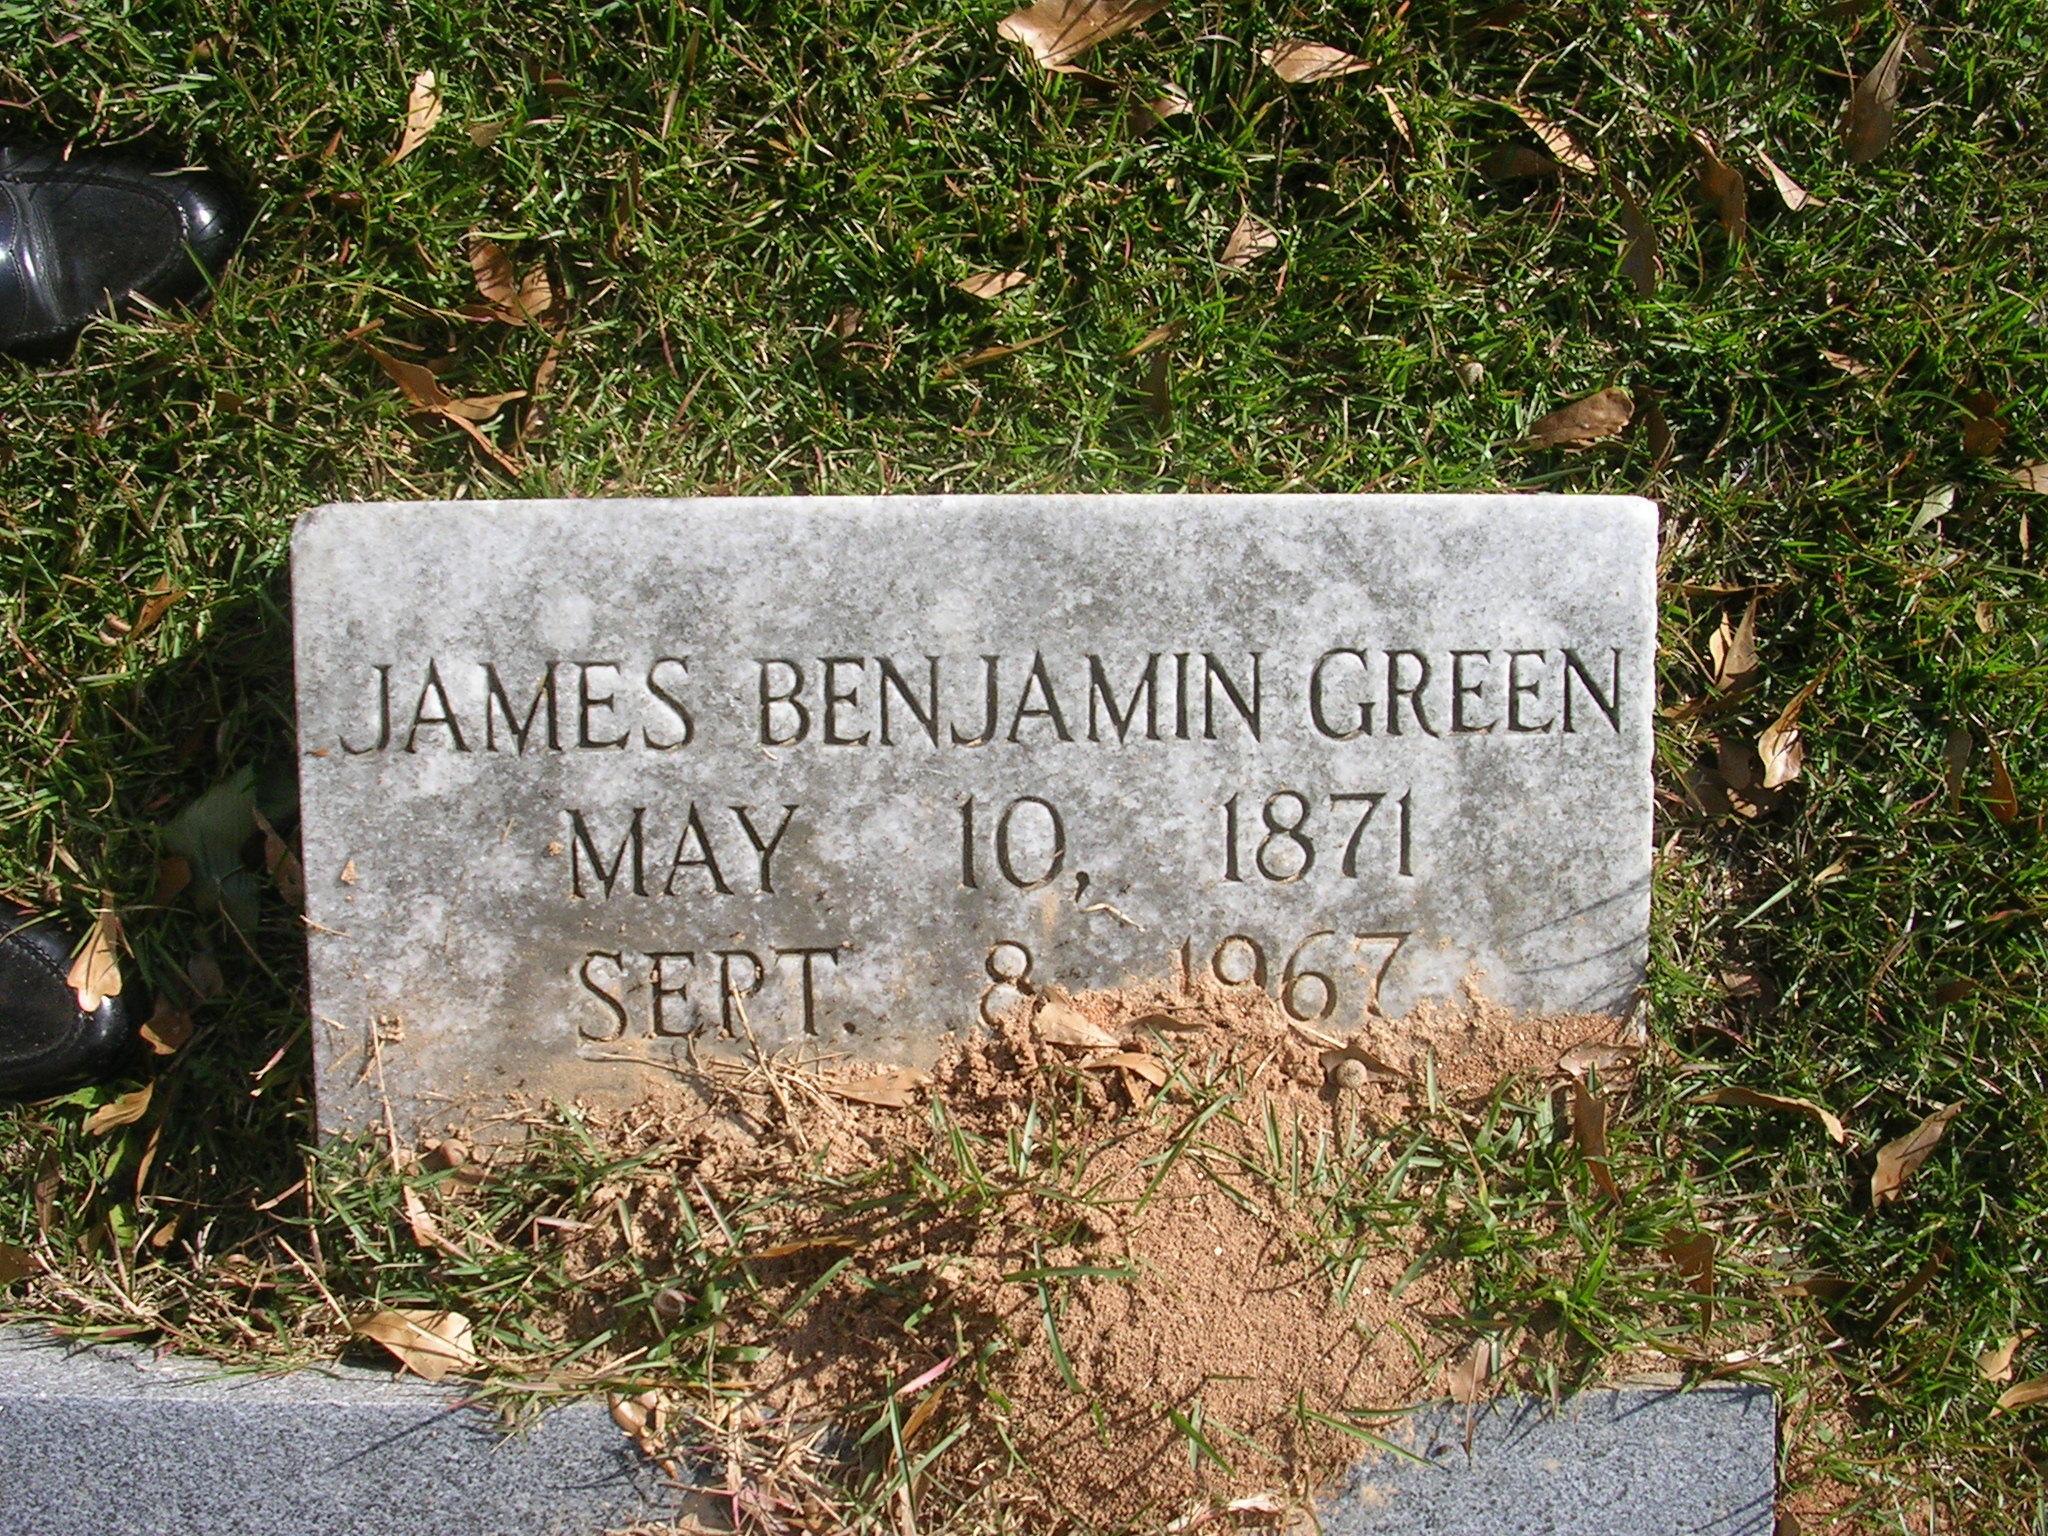 James Benjamin Green is buried at Decatur Cemetery, Decatur, Georgia.